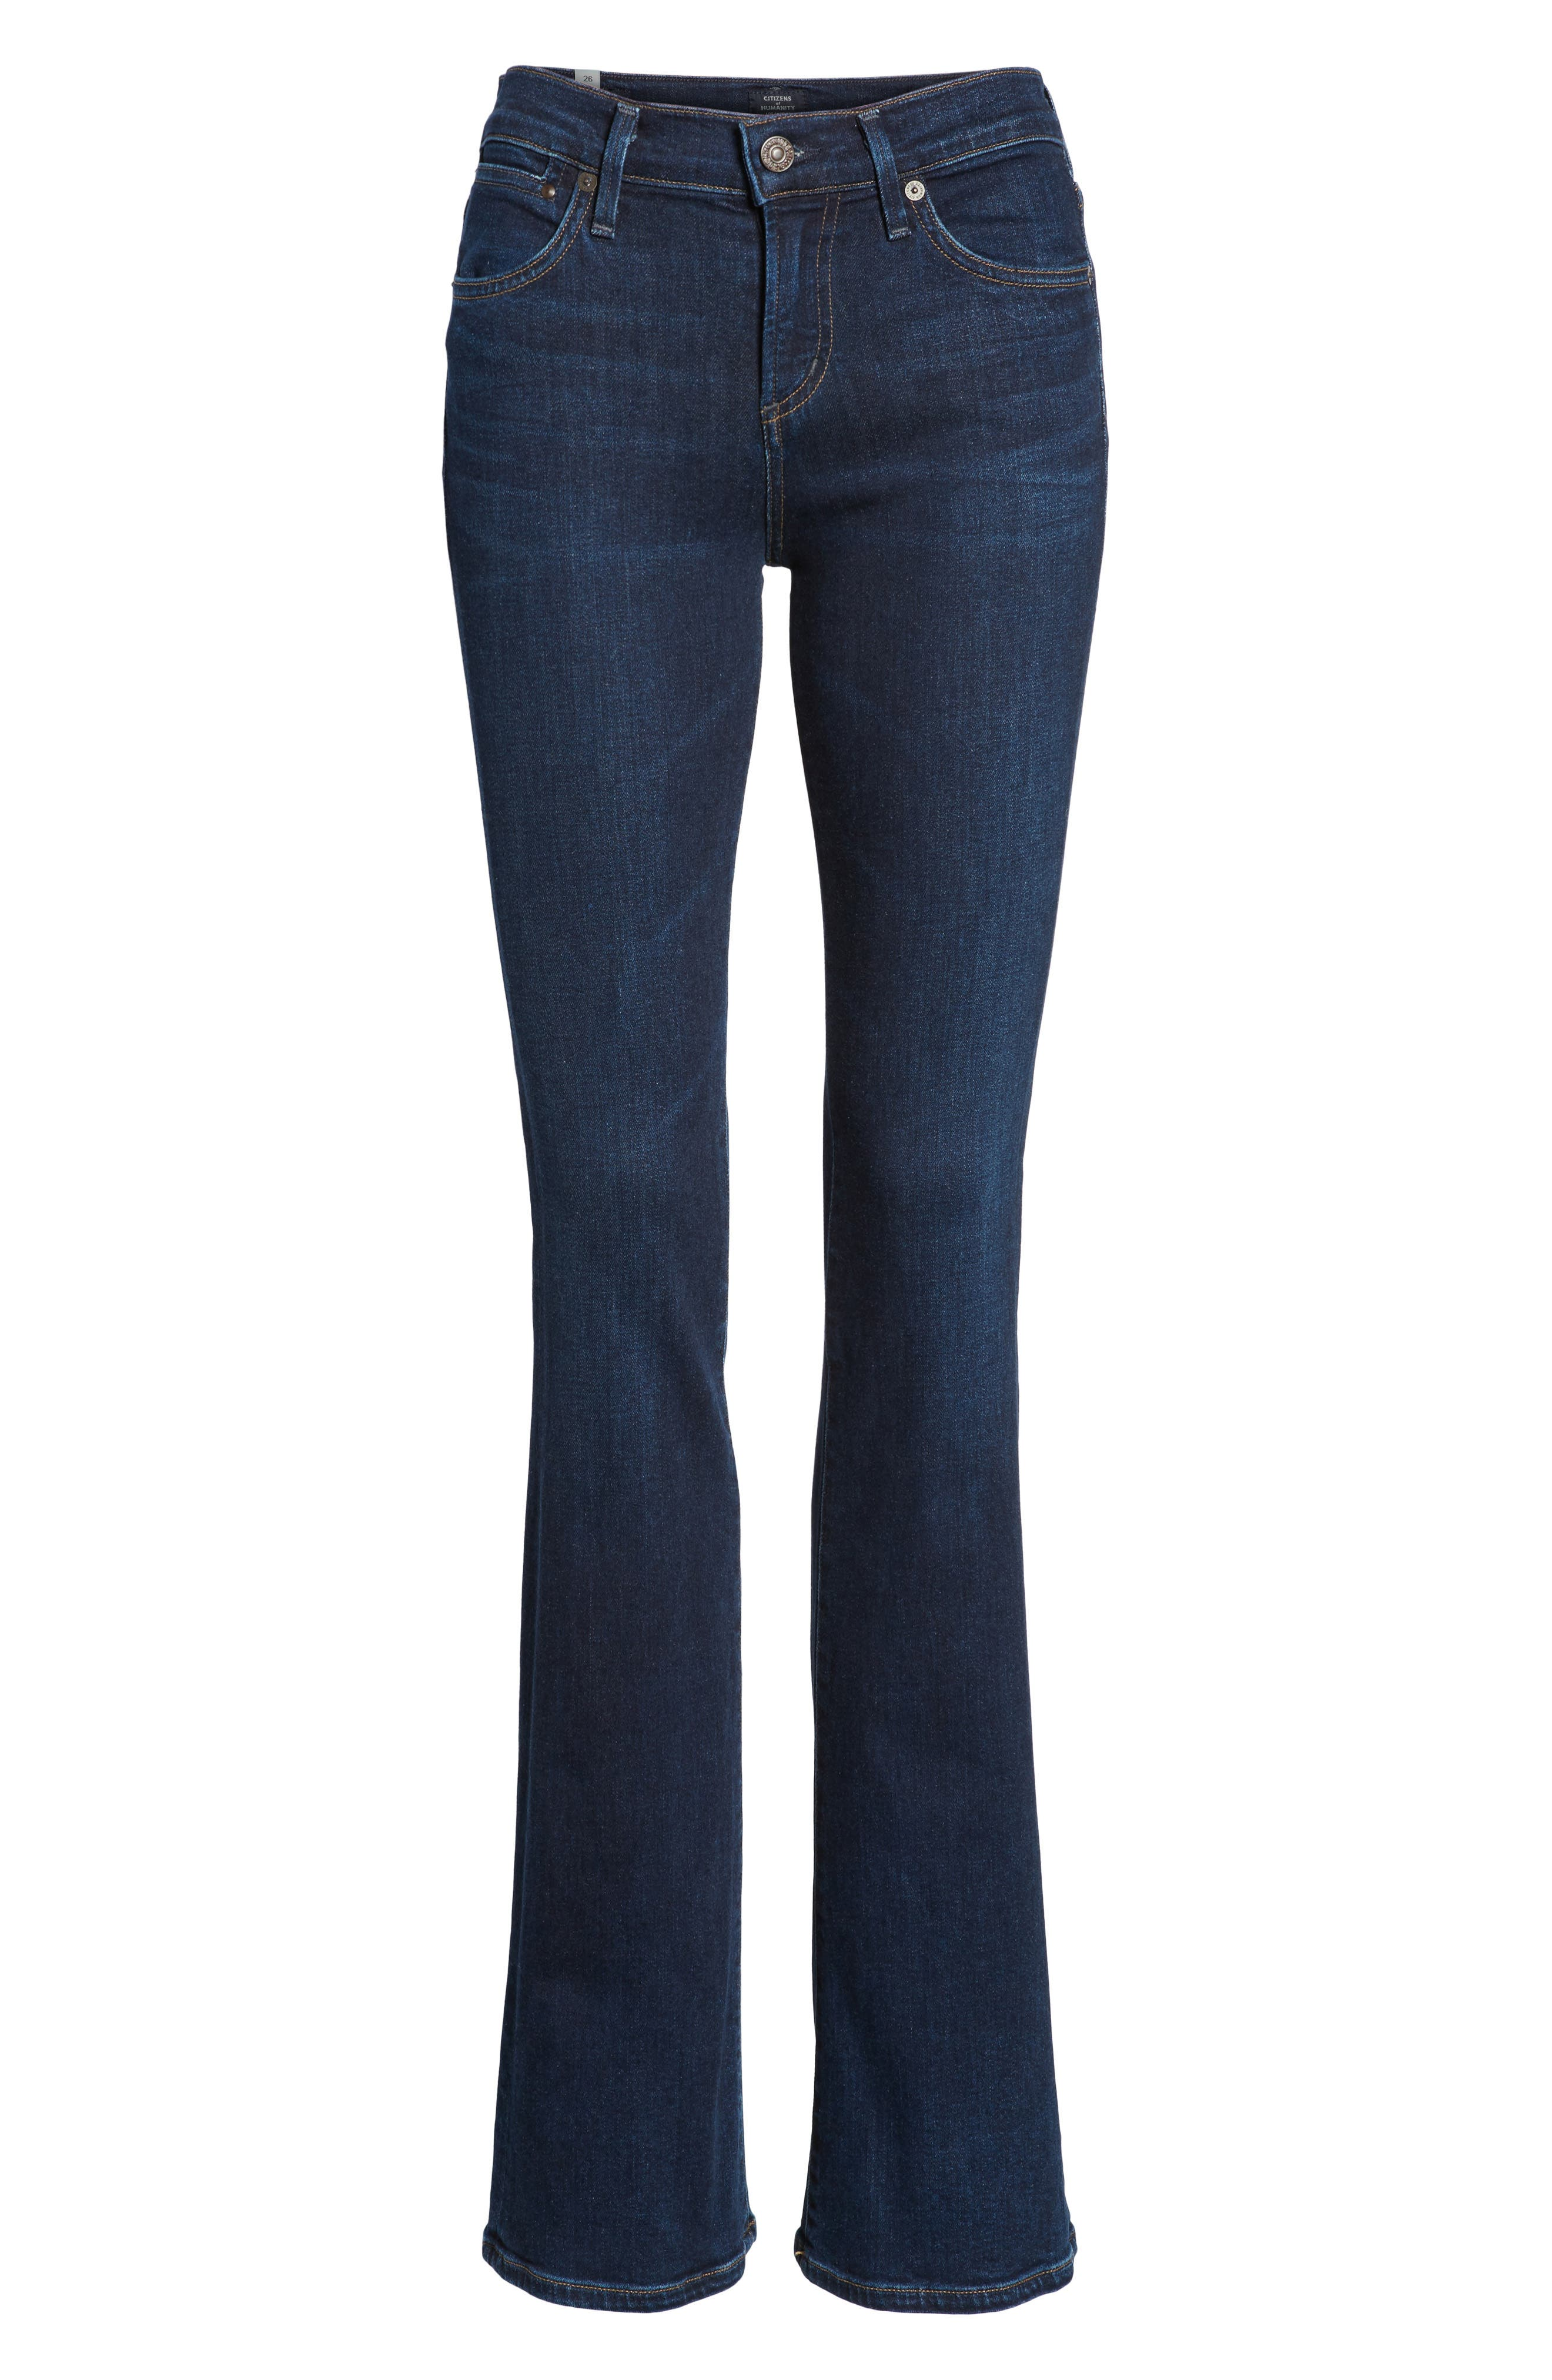 CITIZENS OF HUMANITY,                             Emannuelle Bootcut Jeans,                             Alternate thumbnail 7, color,                             GALAXY